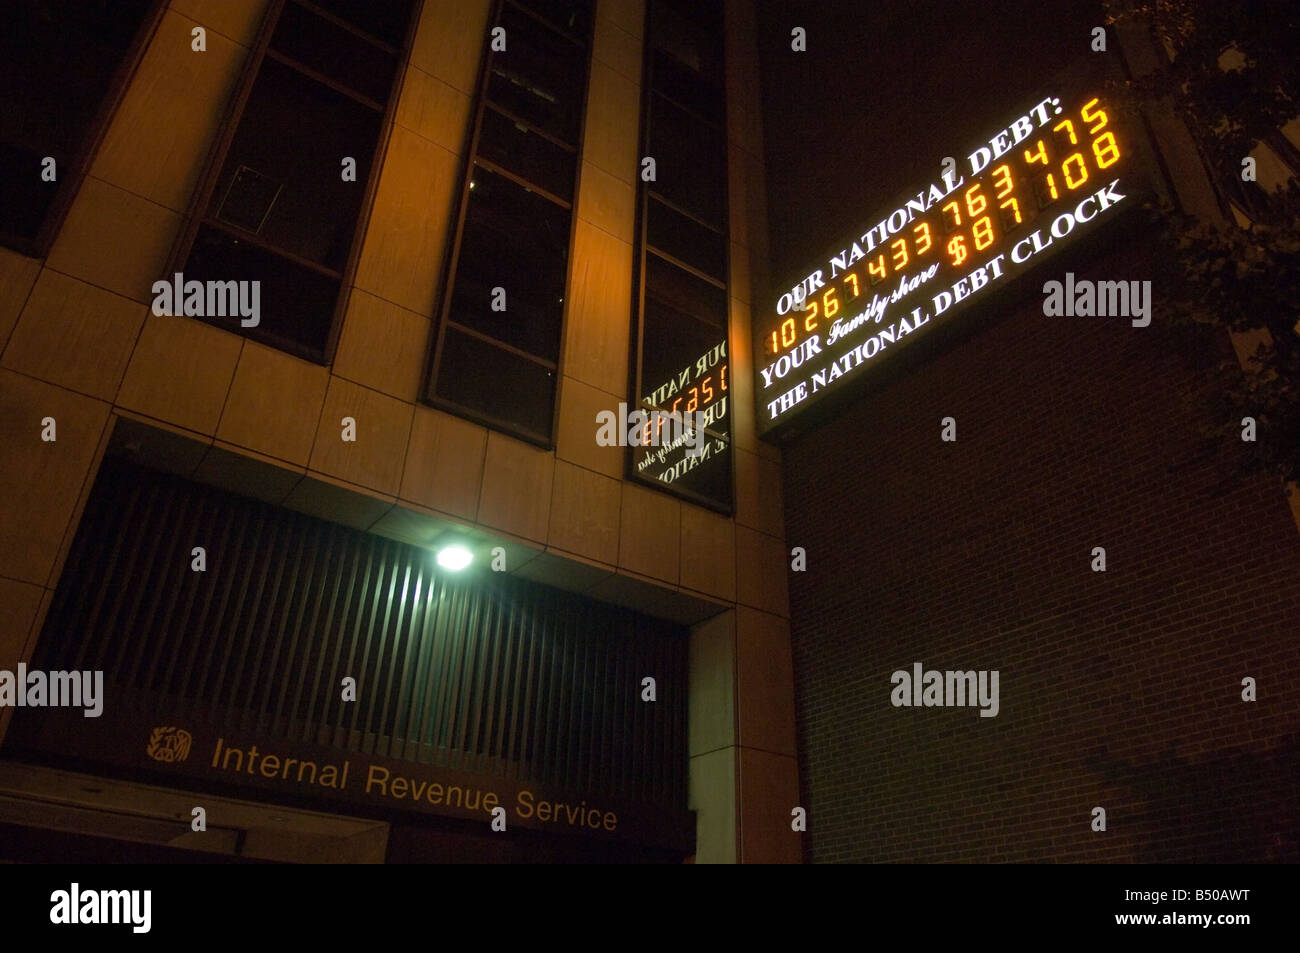 The National Debt Clock in New York - Stock Image